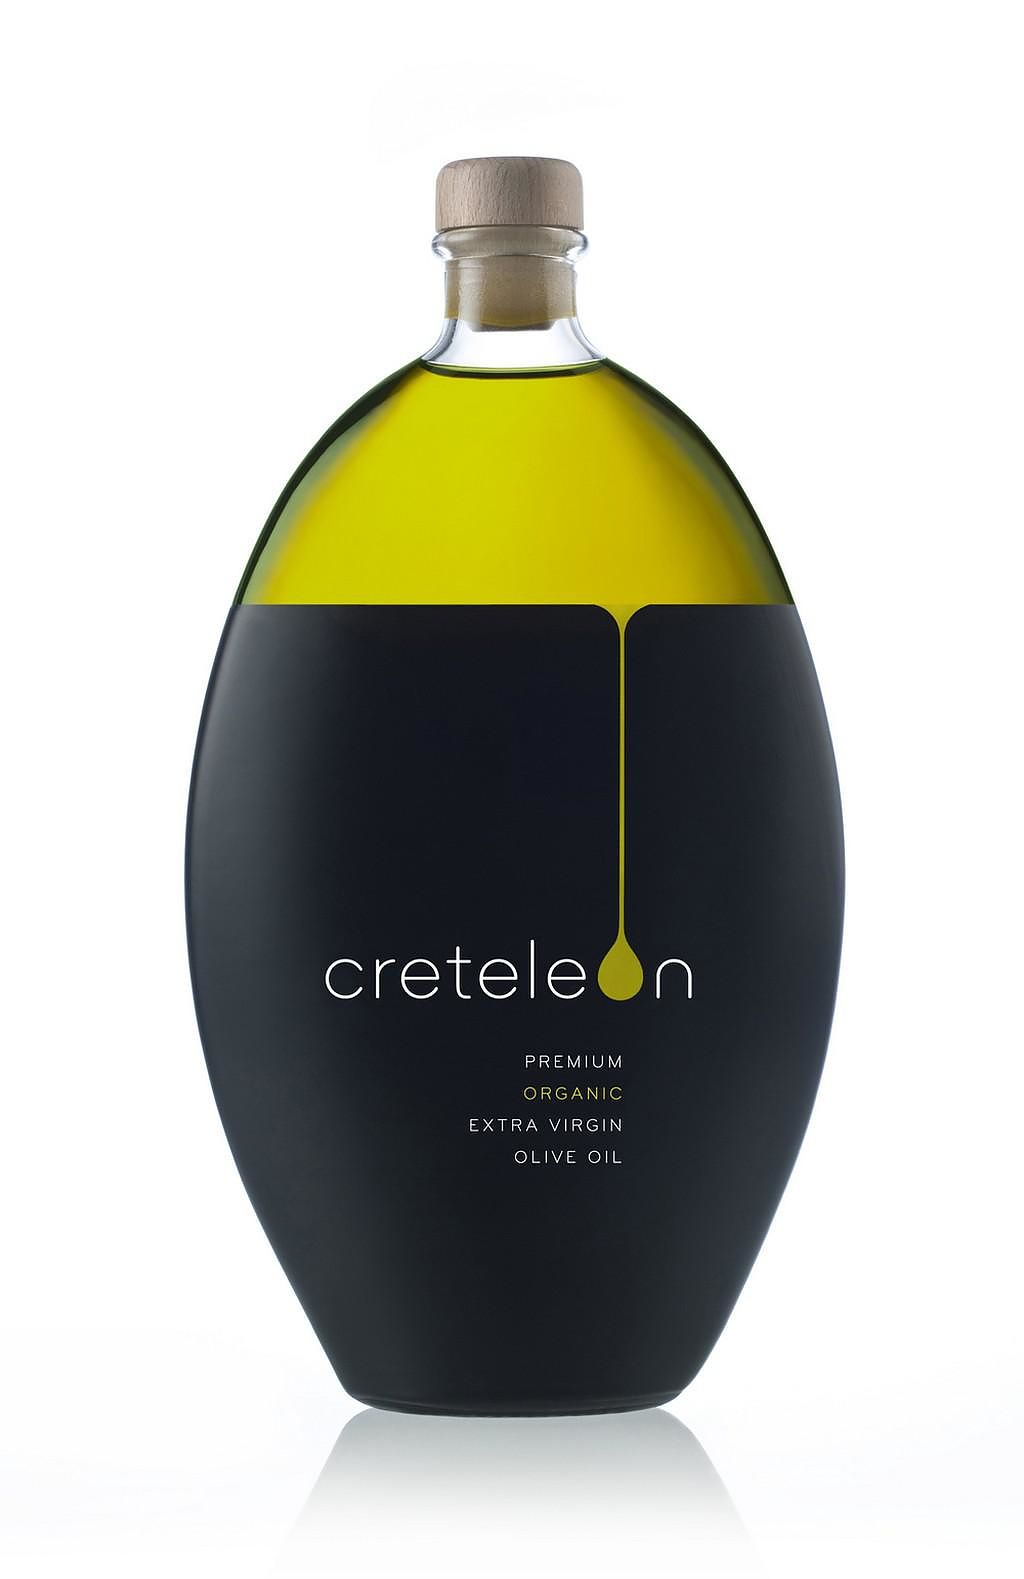 Creteleon Minimalist Olive Oil Packaging by Polydorou Design graphic design studio.